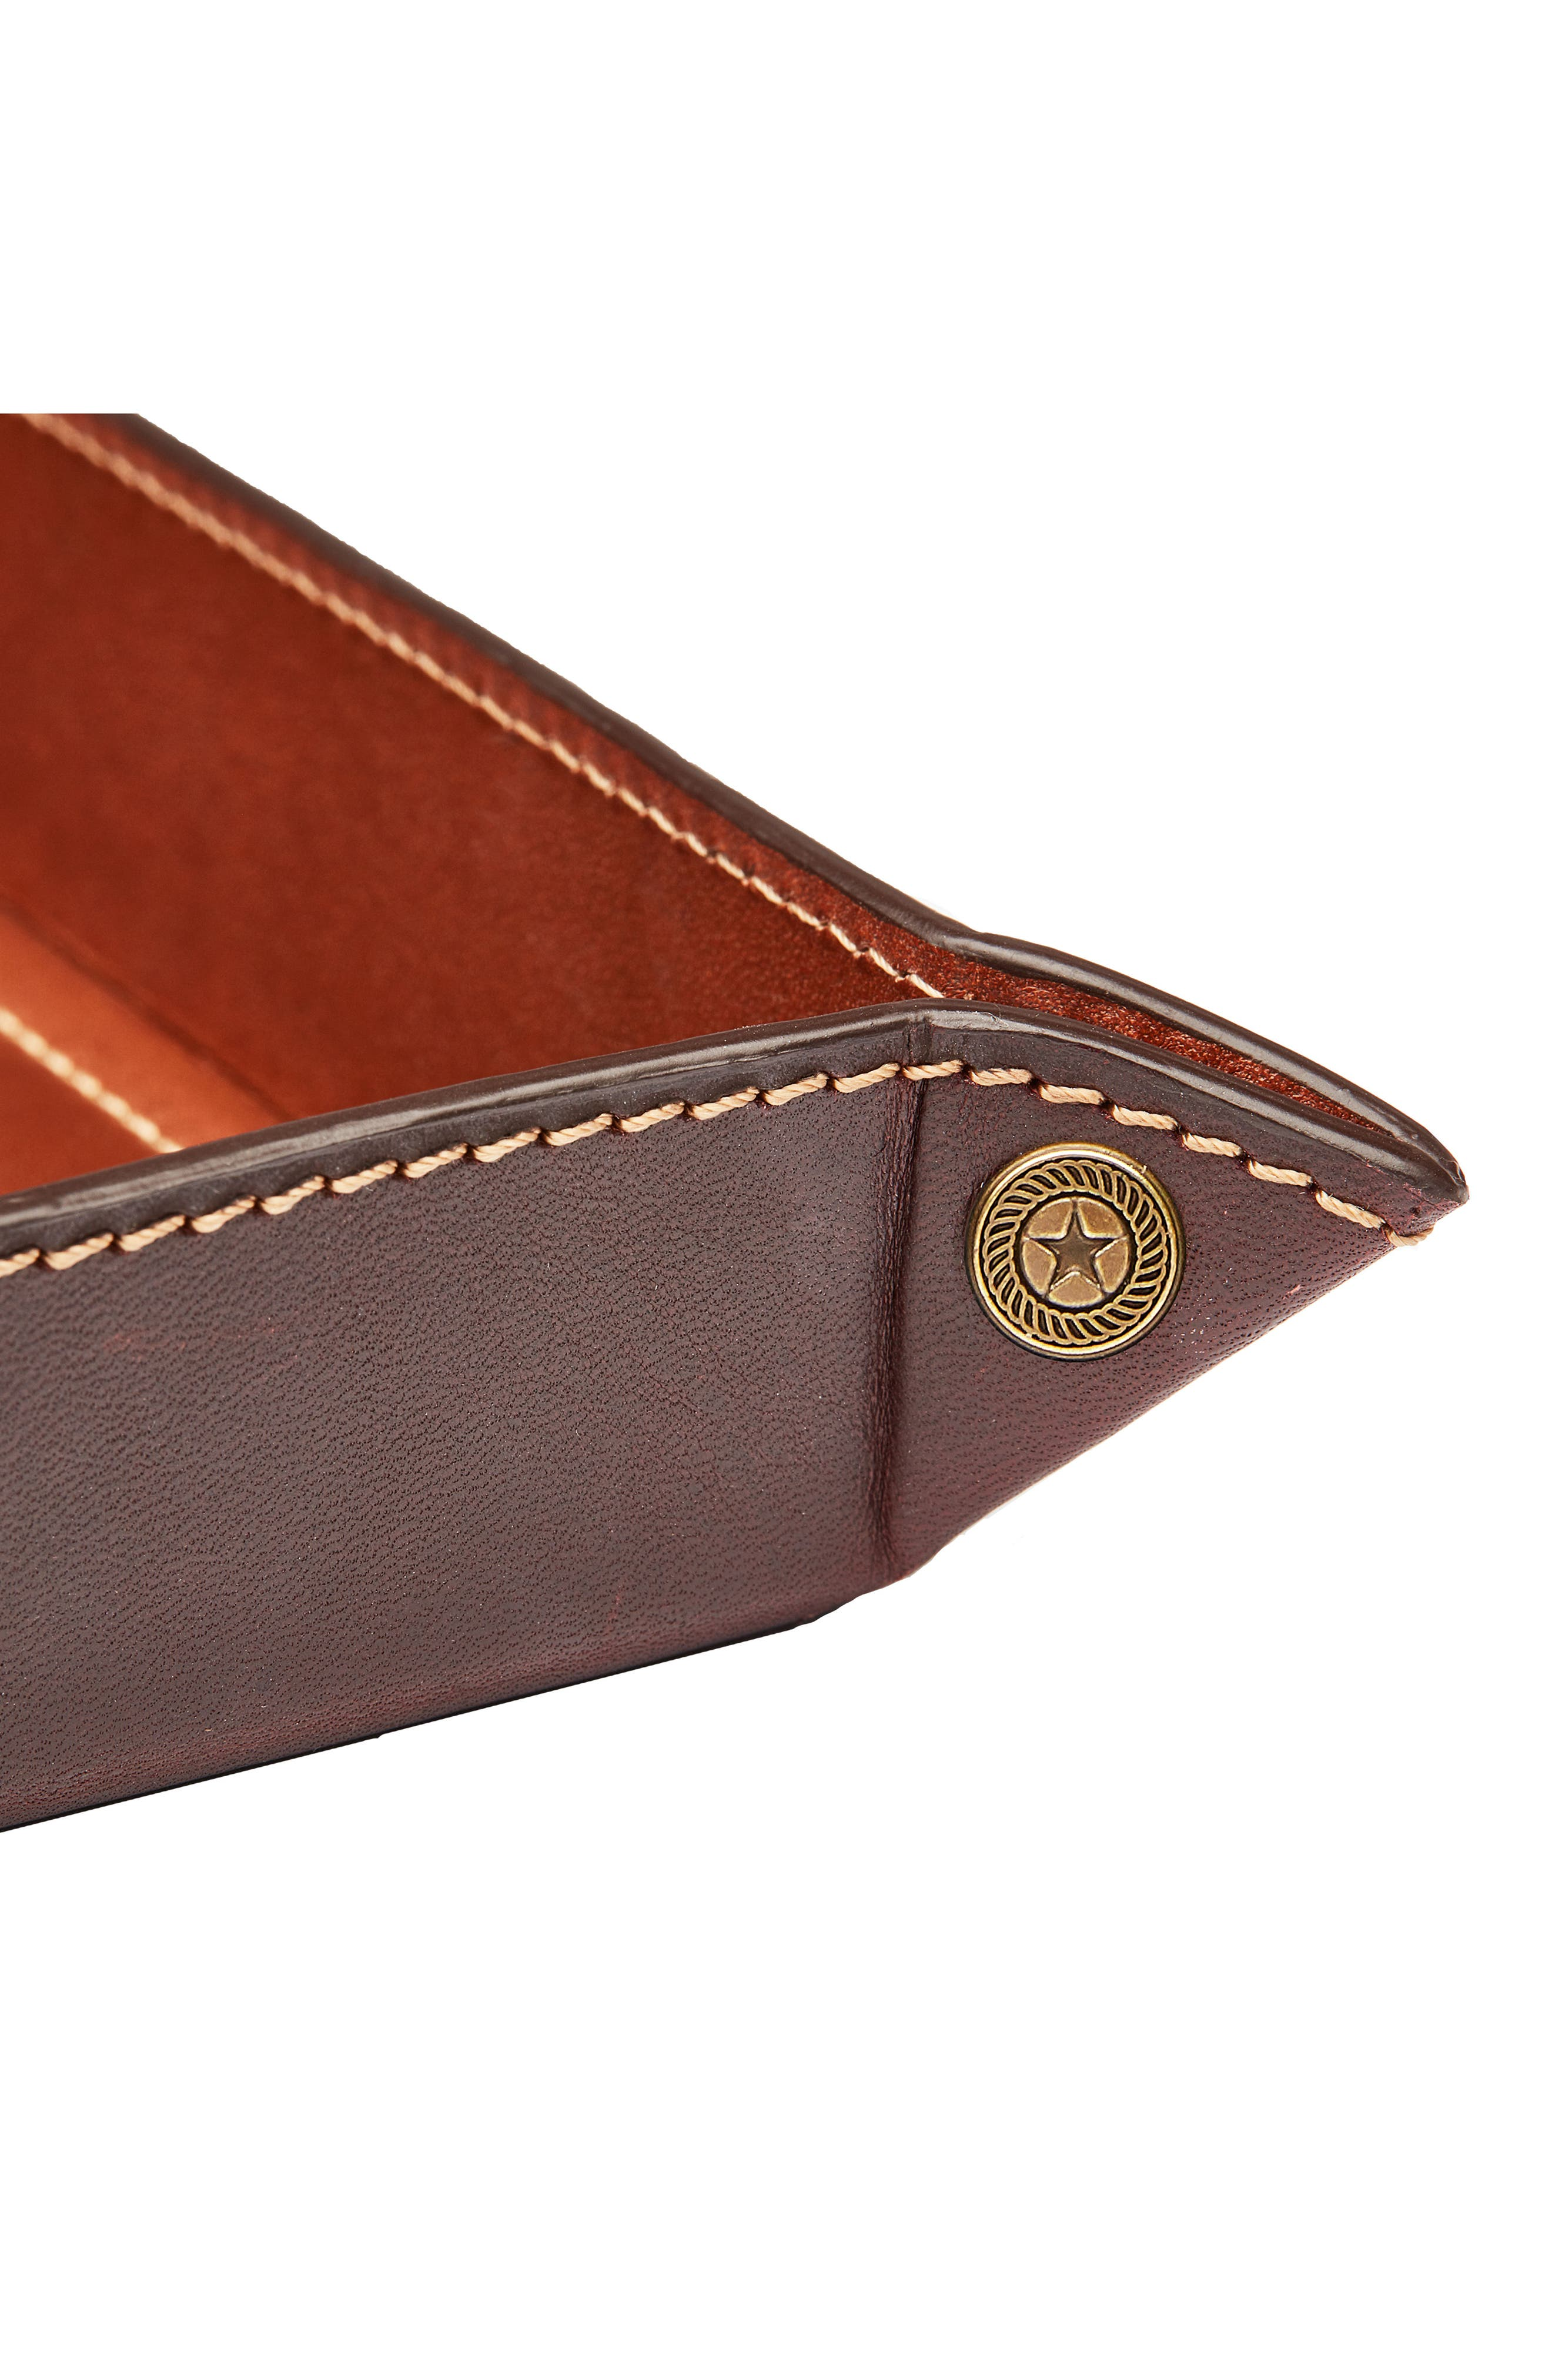 Alternate Image 3  - Jack Mason Small Pinched Leather Valet Tray